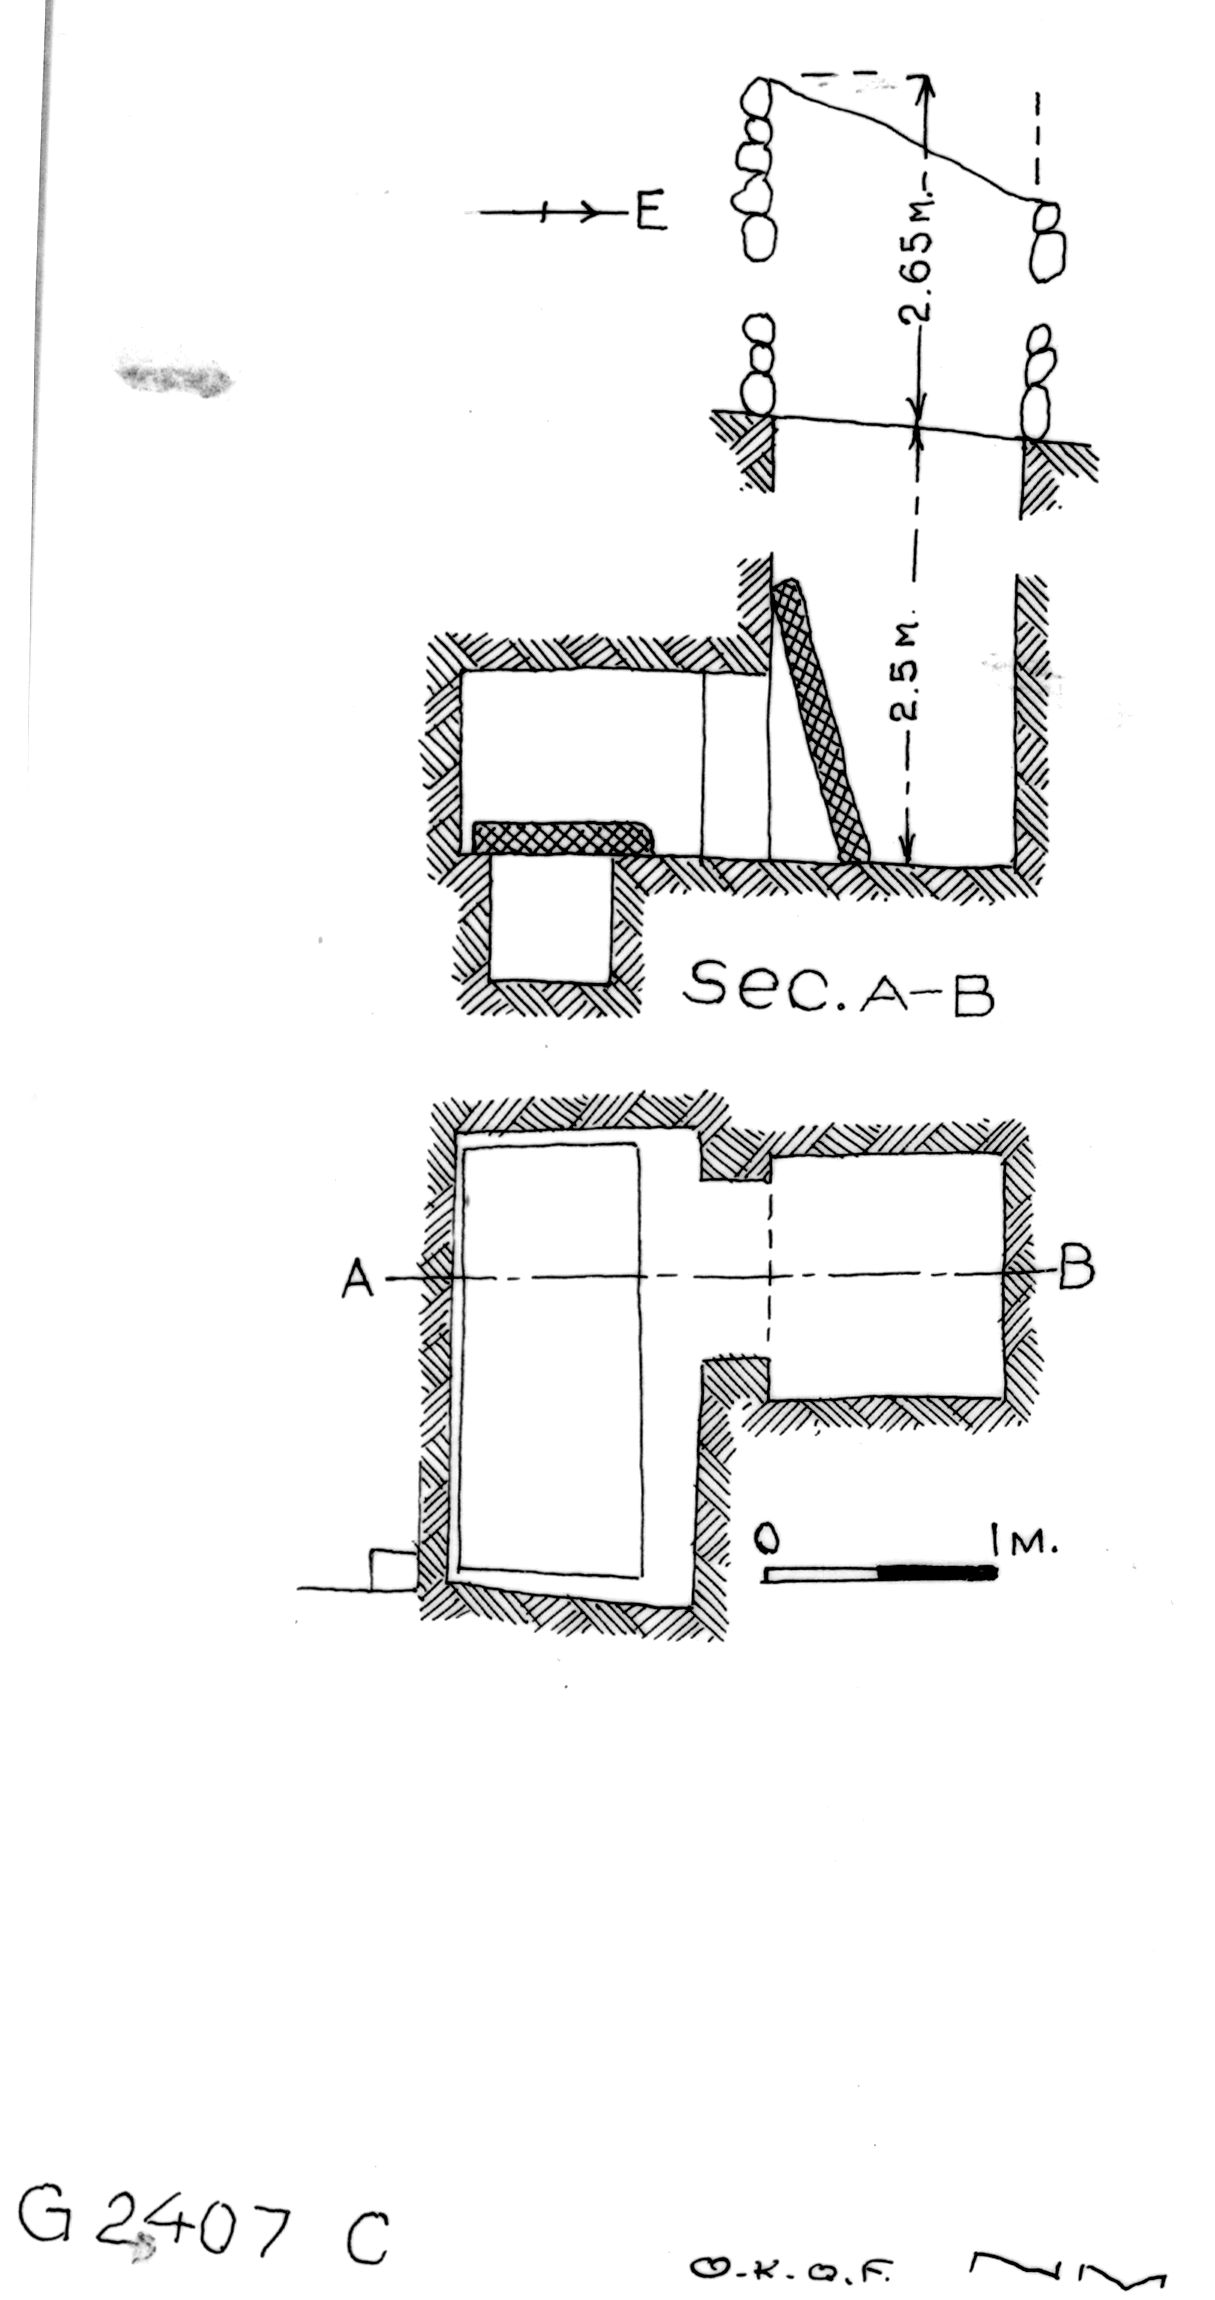 Maps and plans: G 2407, Shaft C